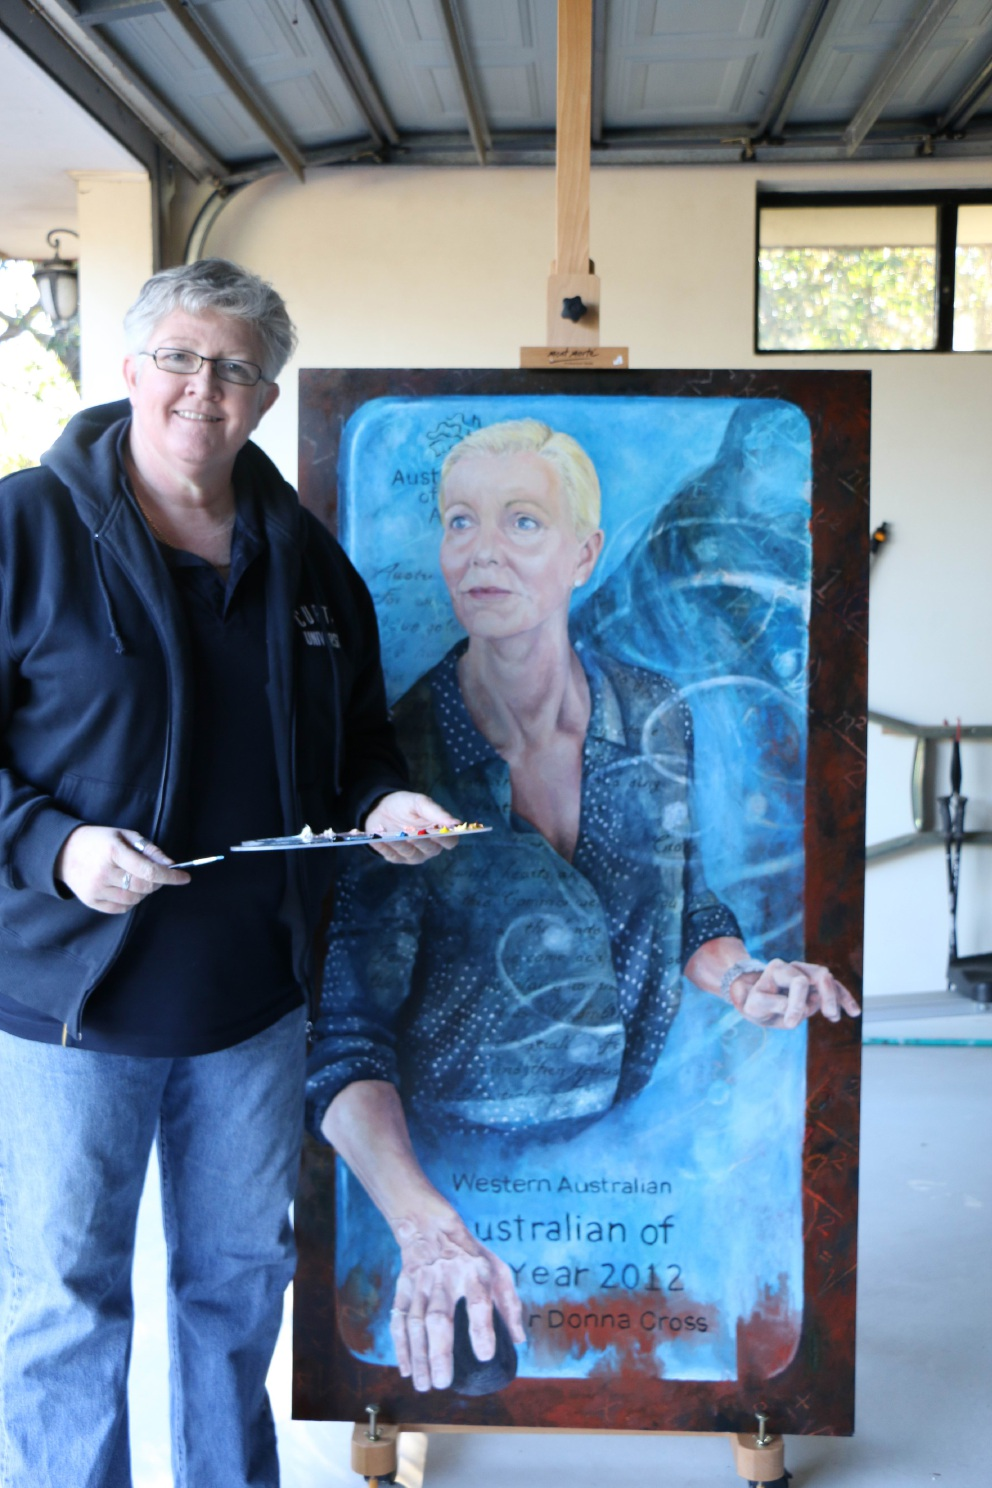 Ann Knight with her portrait of Donna Cross.